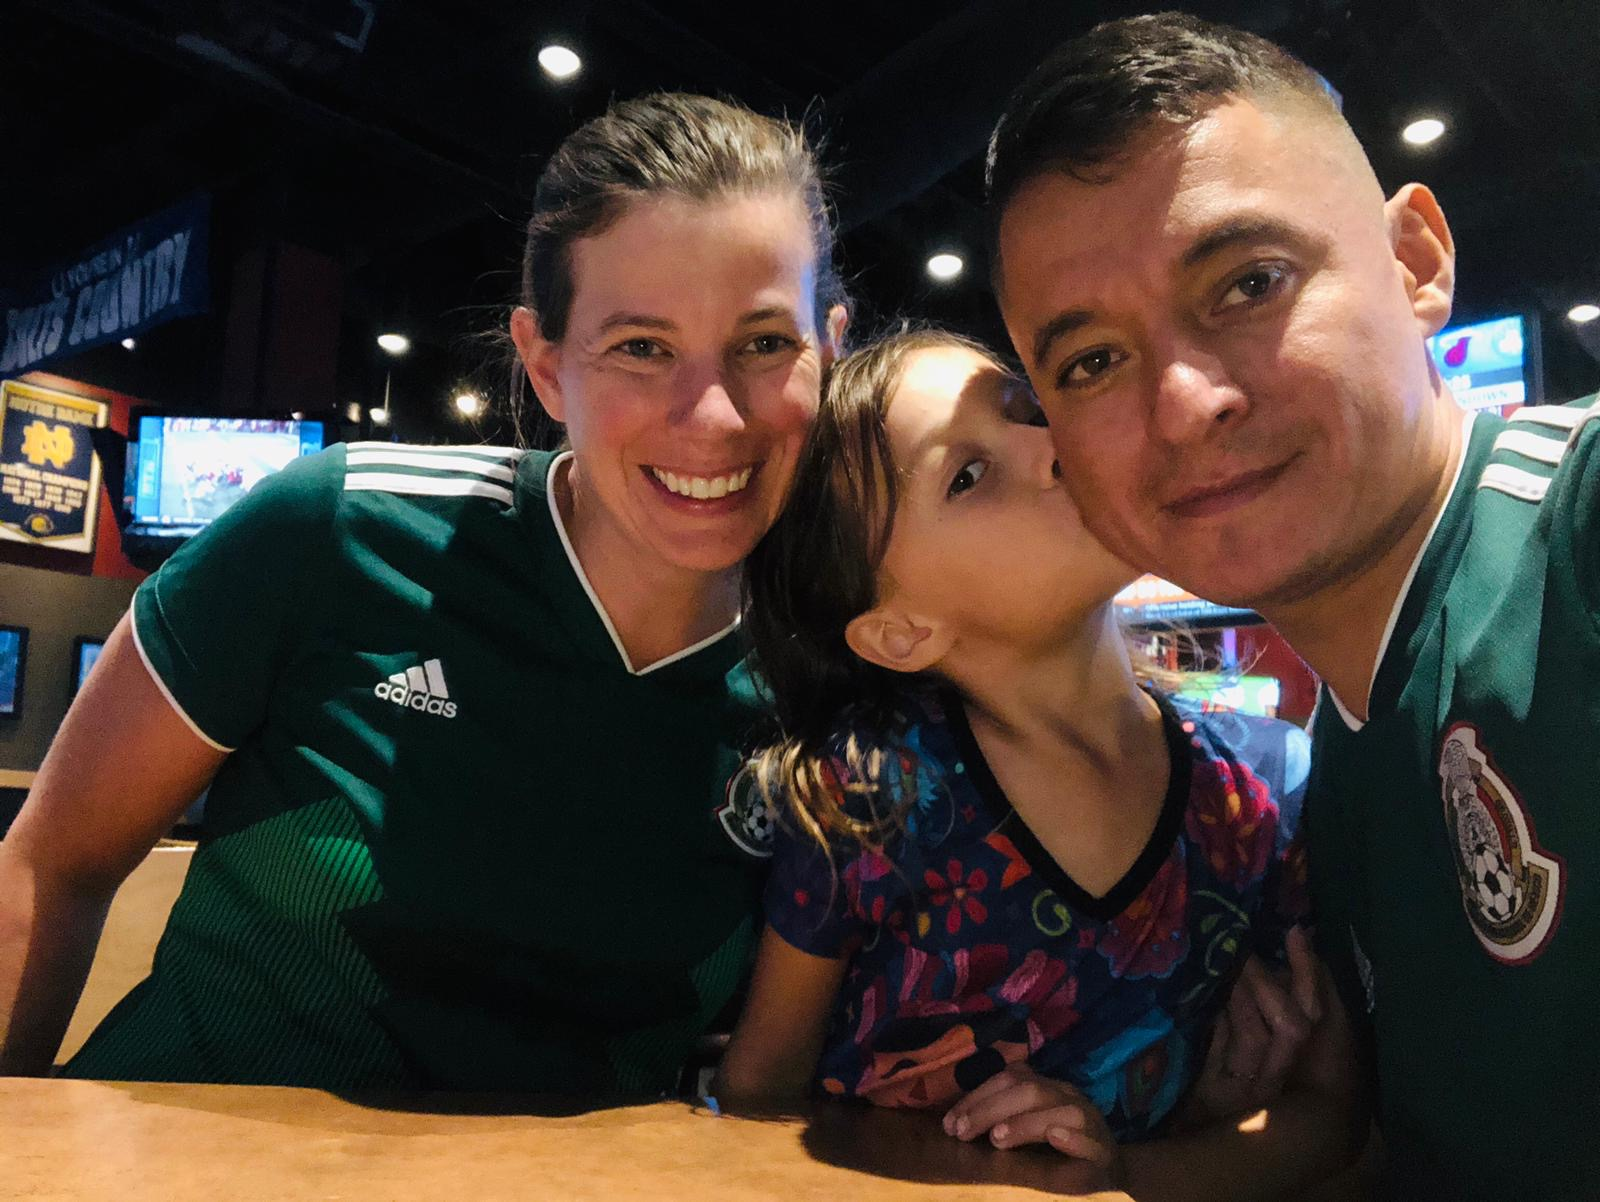 Amanda Crecelius with husband and daughter.  Amanda and husband are wearing Mexico soccer jersey and daughter is wearing a shirt with Mexican dolls.